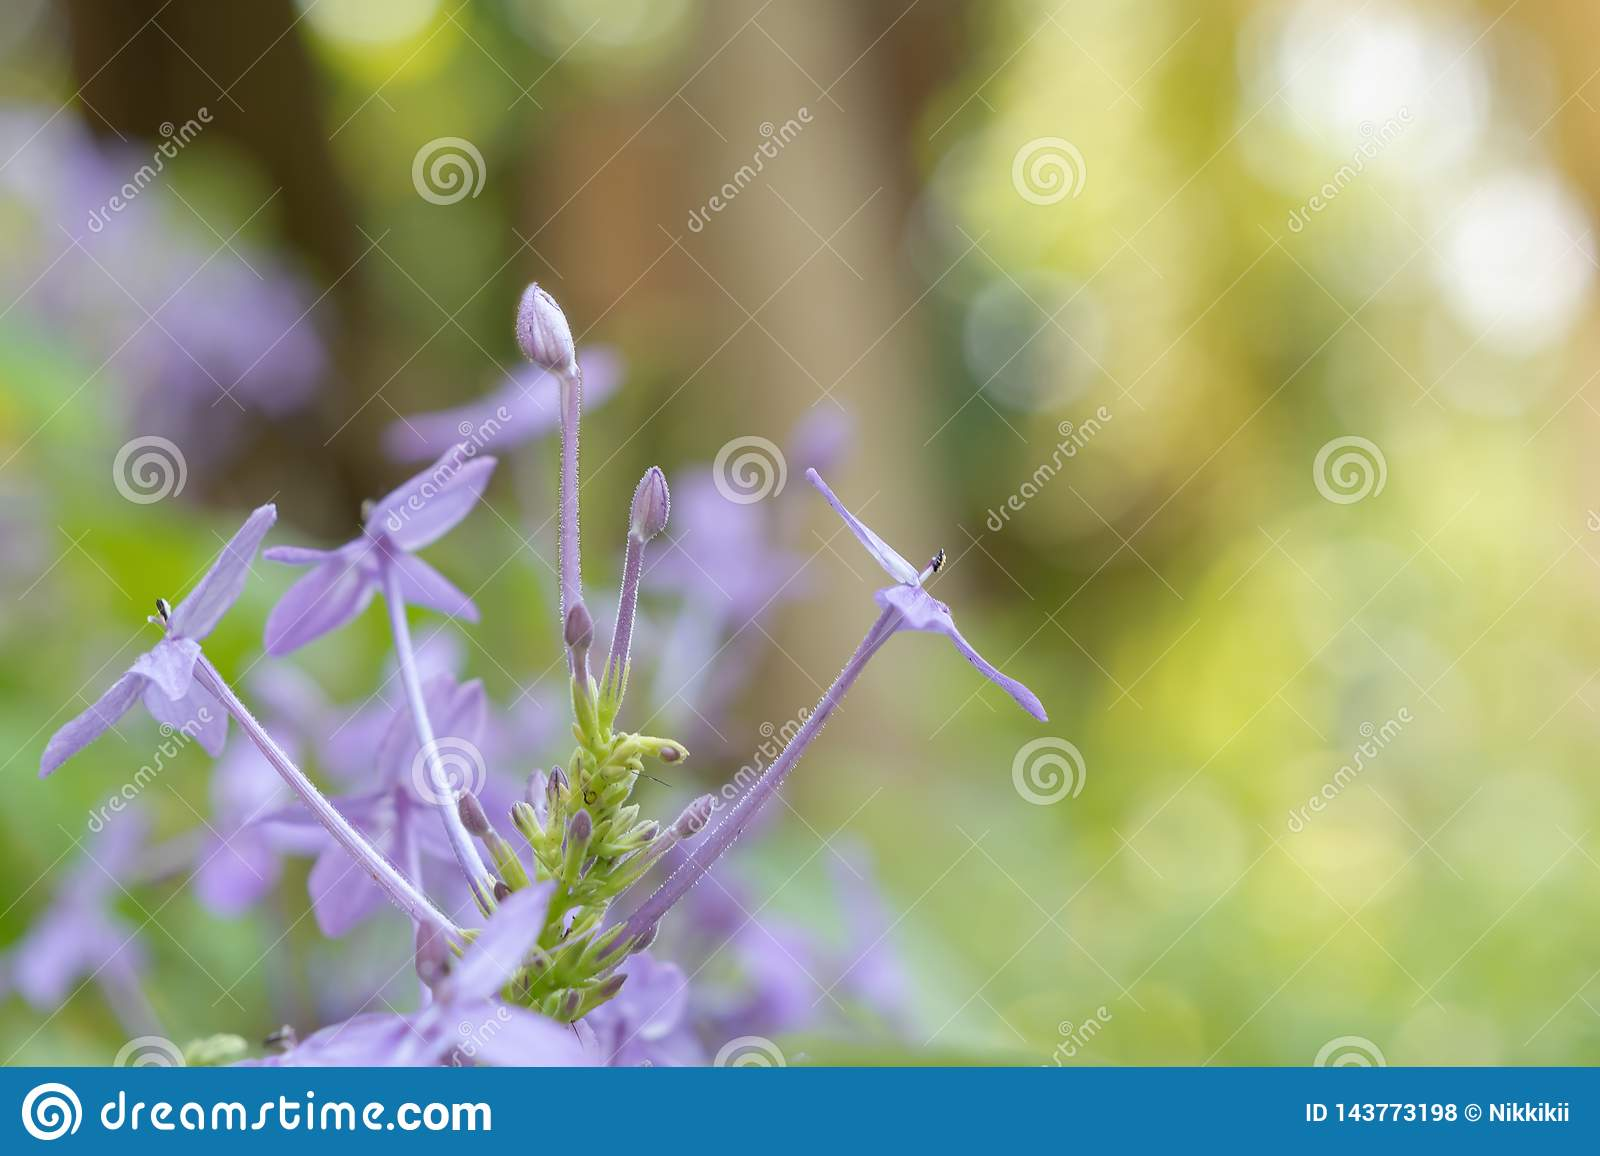 Purple flowers on bokeh and blurred backgrounds